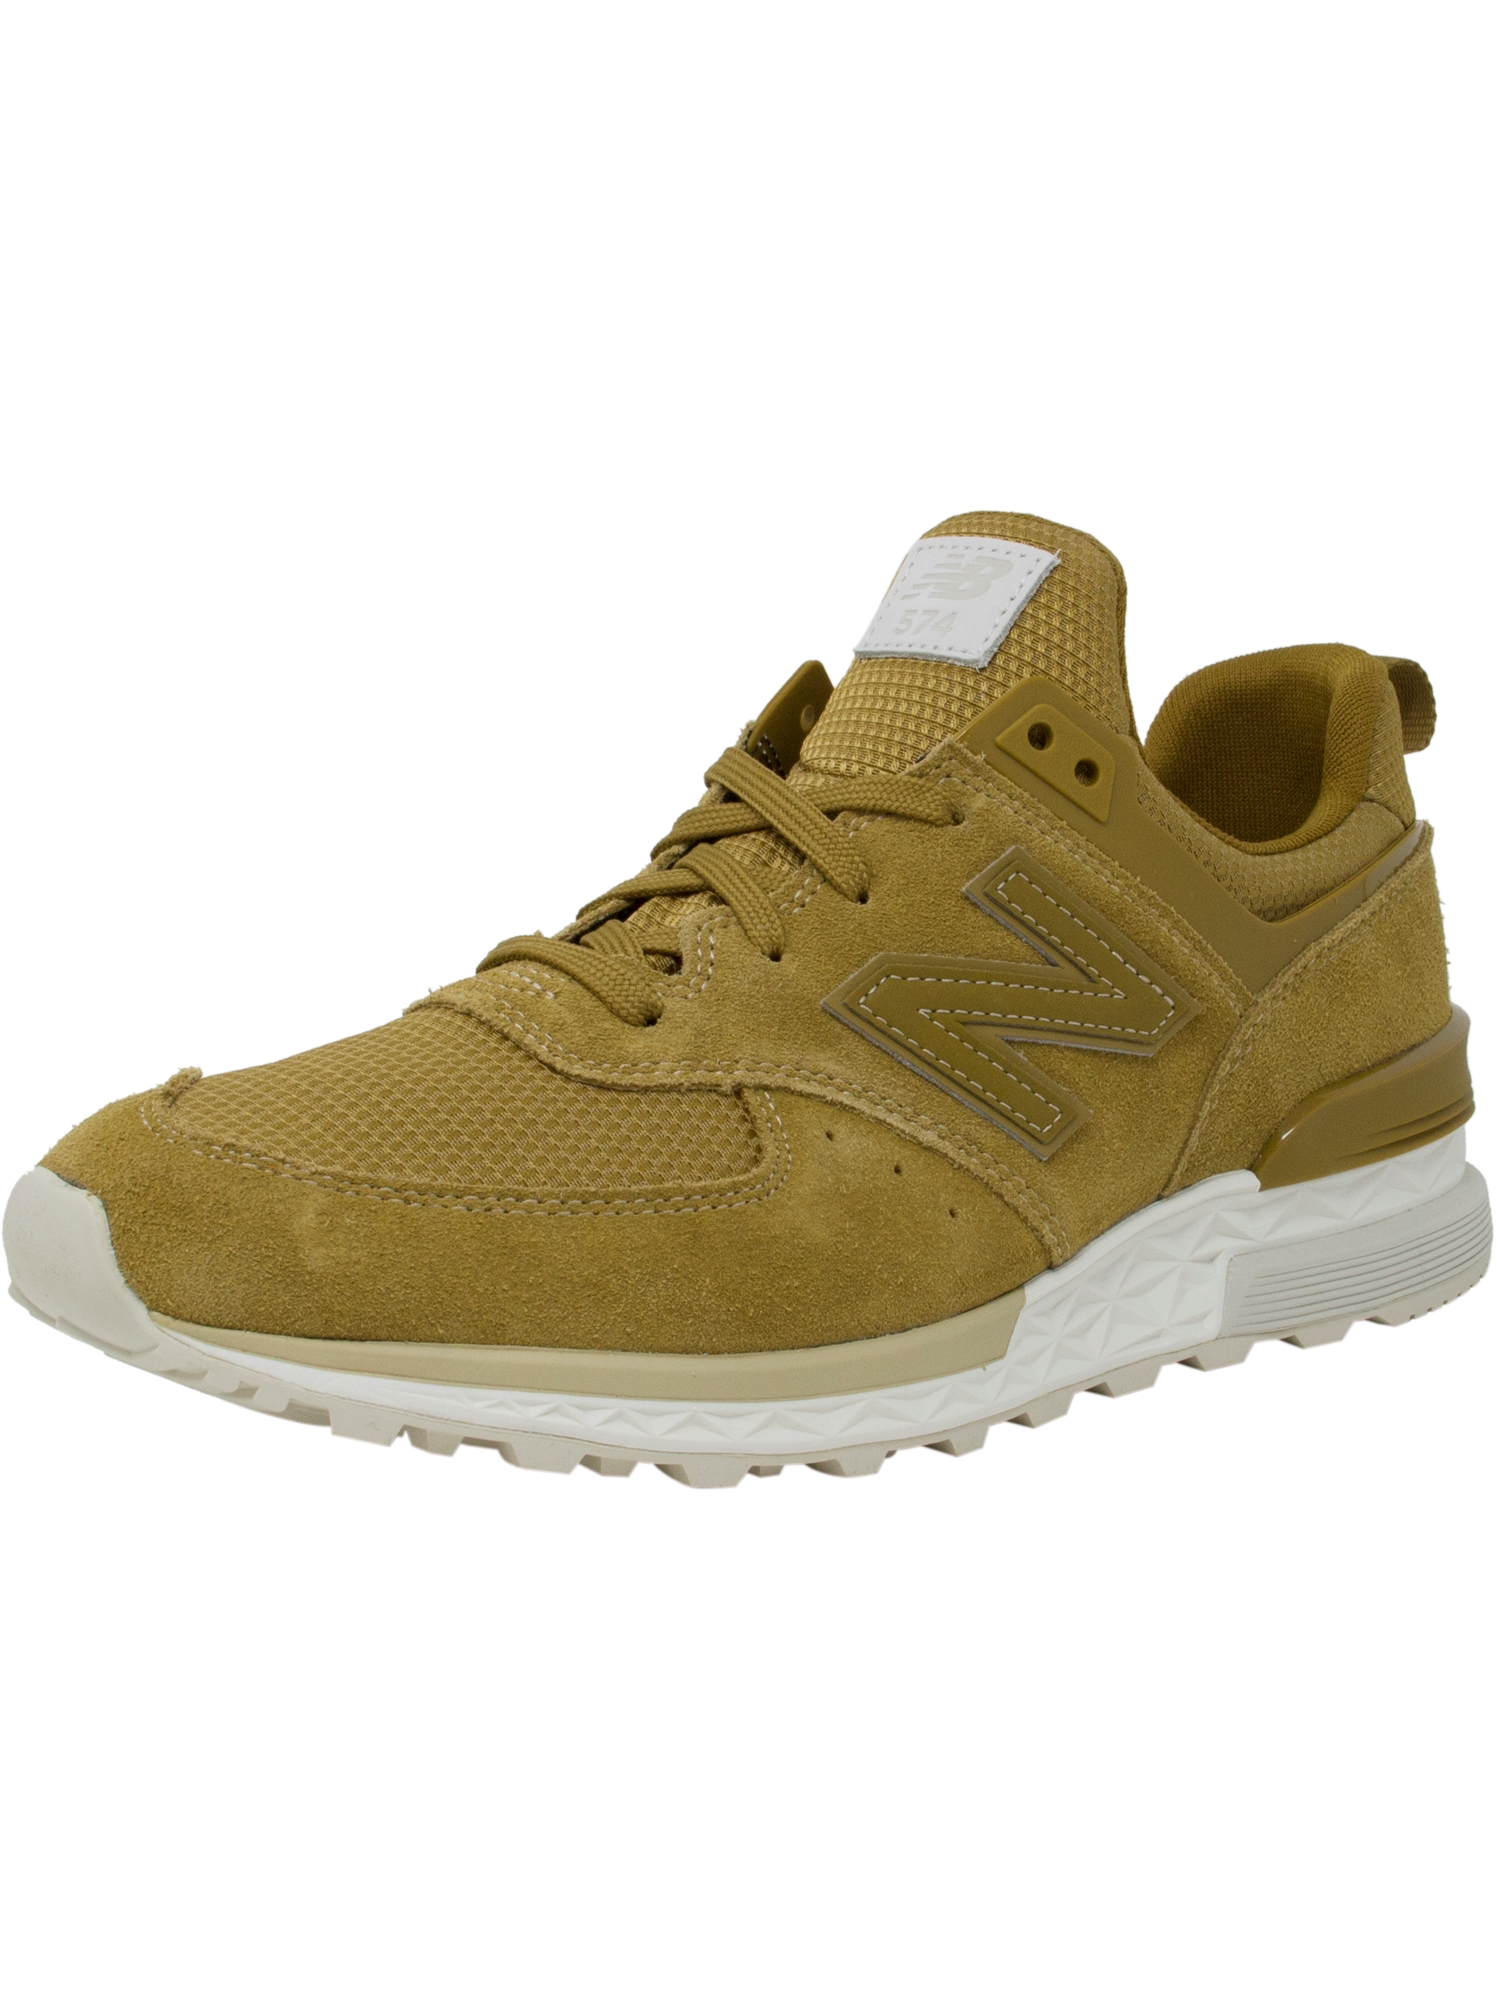 New Balance Men's Ms574 Fsb Ankle-High Suede Fashion Sneaker - 10.5M